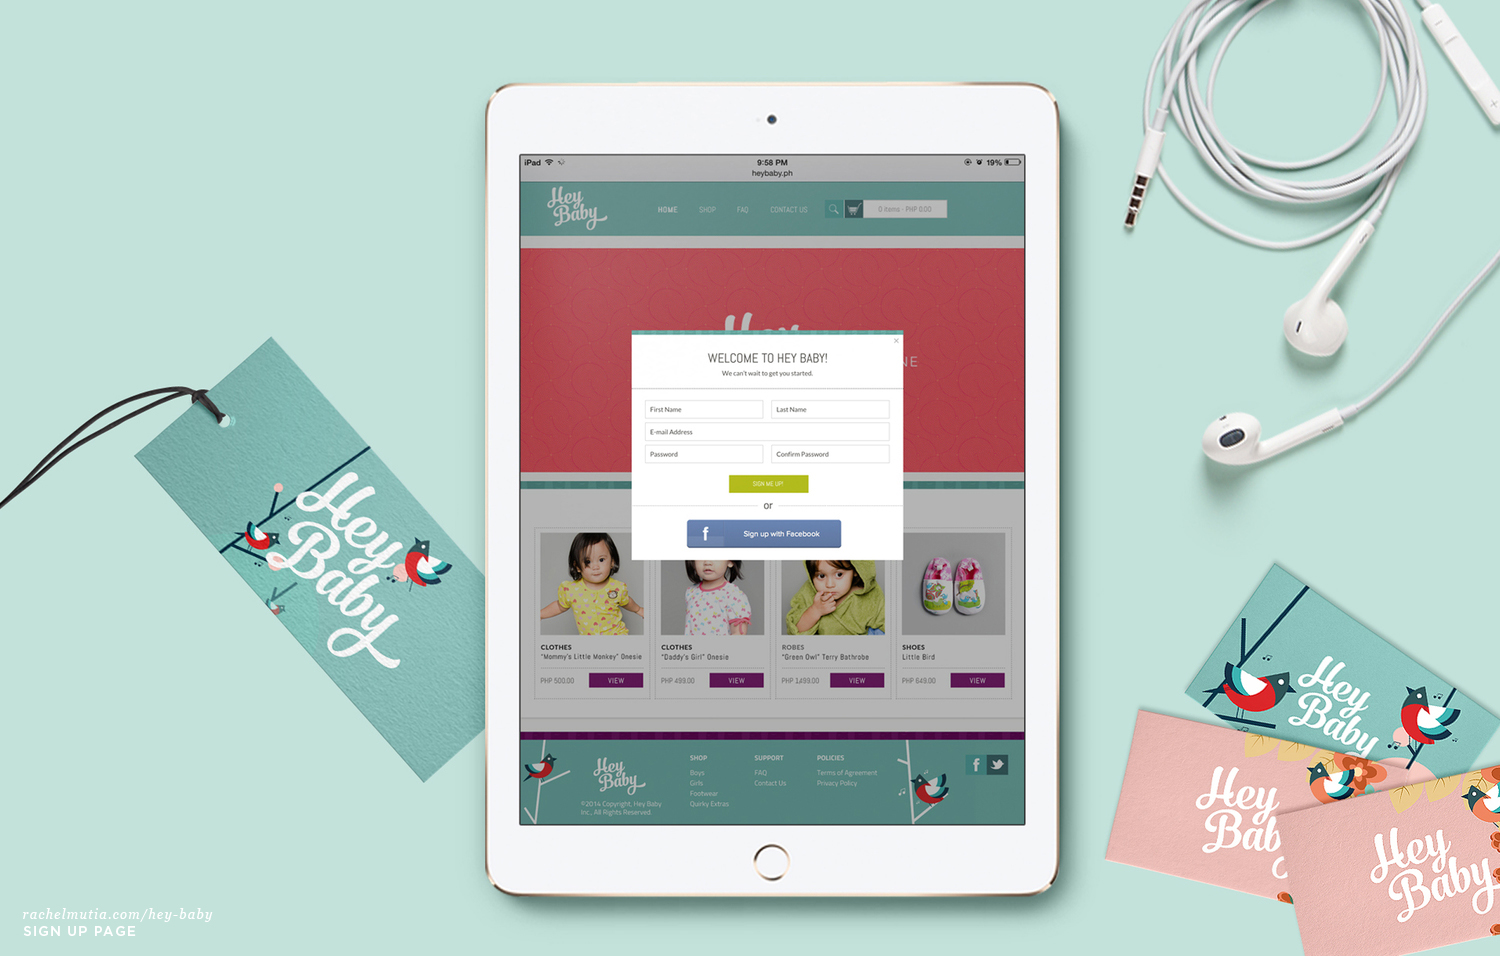 Hey Baby Sign Up Page by Rachel Mutia